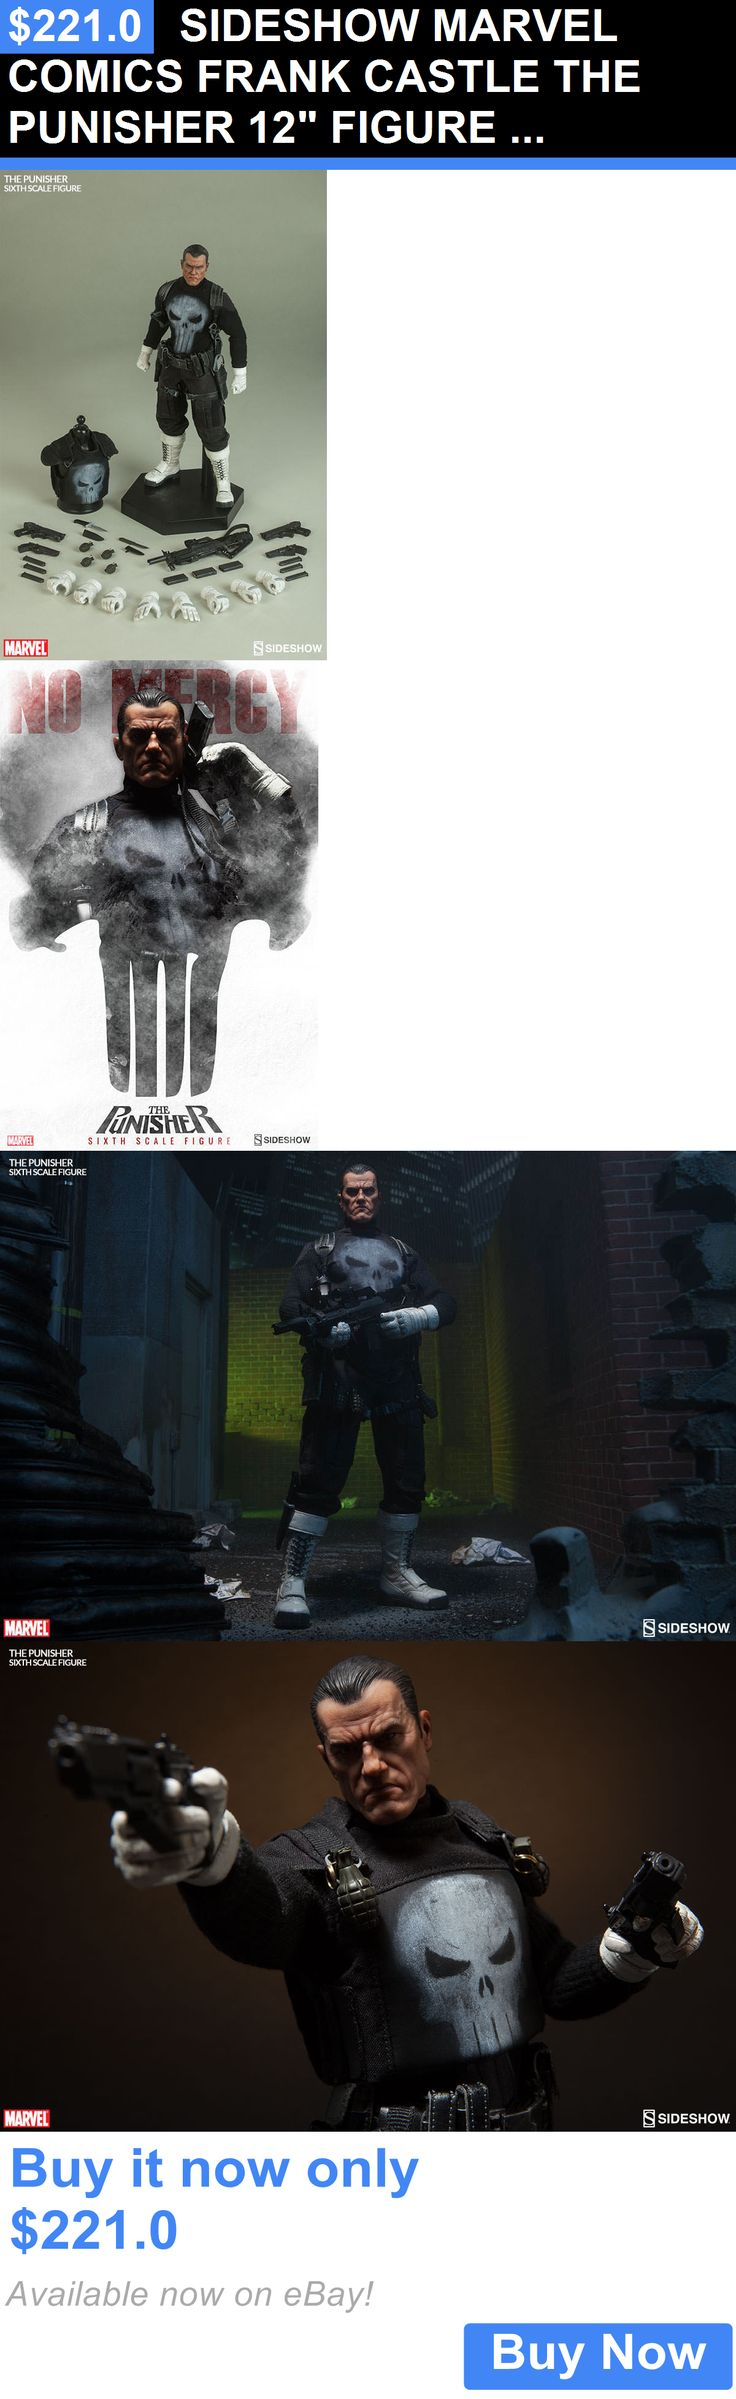 Toys And Games: Sideshow Marvel Comics Frank Castle The Punisher 12 Figure 1/6 Scale Daredevil BUY IT NOW ONLY: $221.0